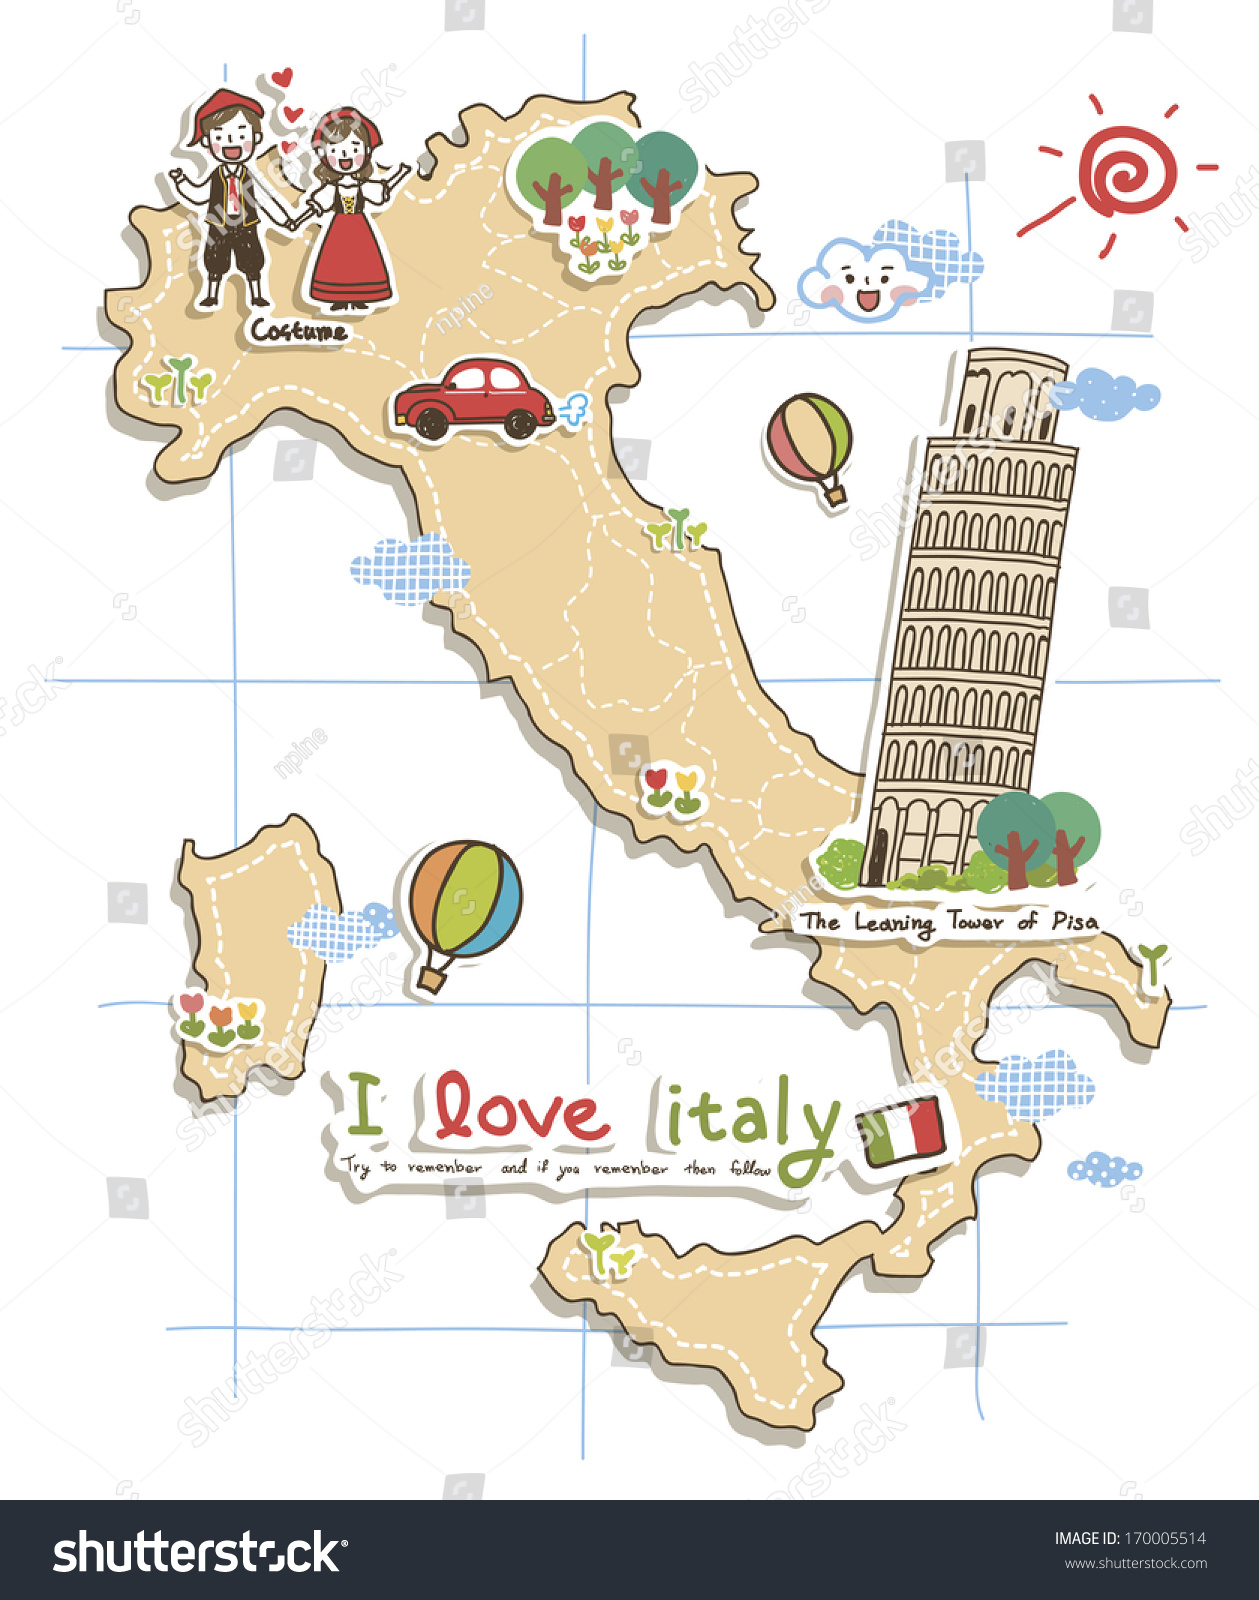 map depicting tourist attractions in italy. map depicting tourist attractions italy stock illustration